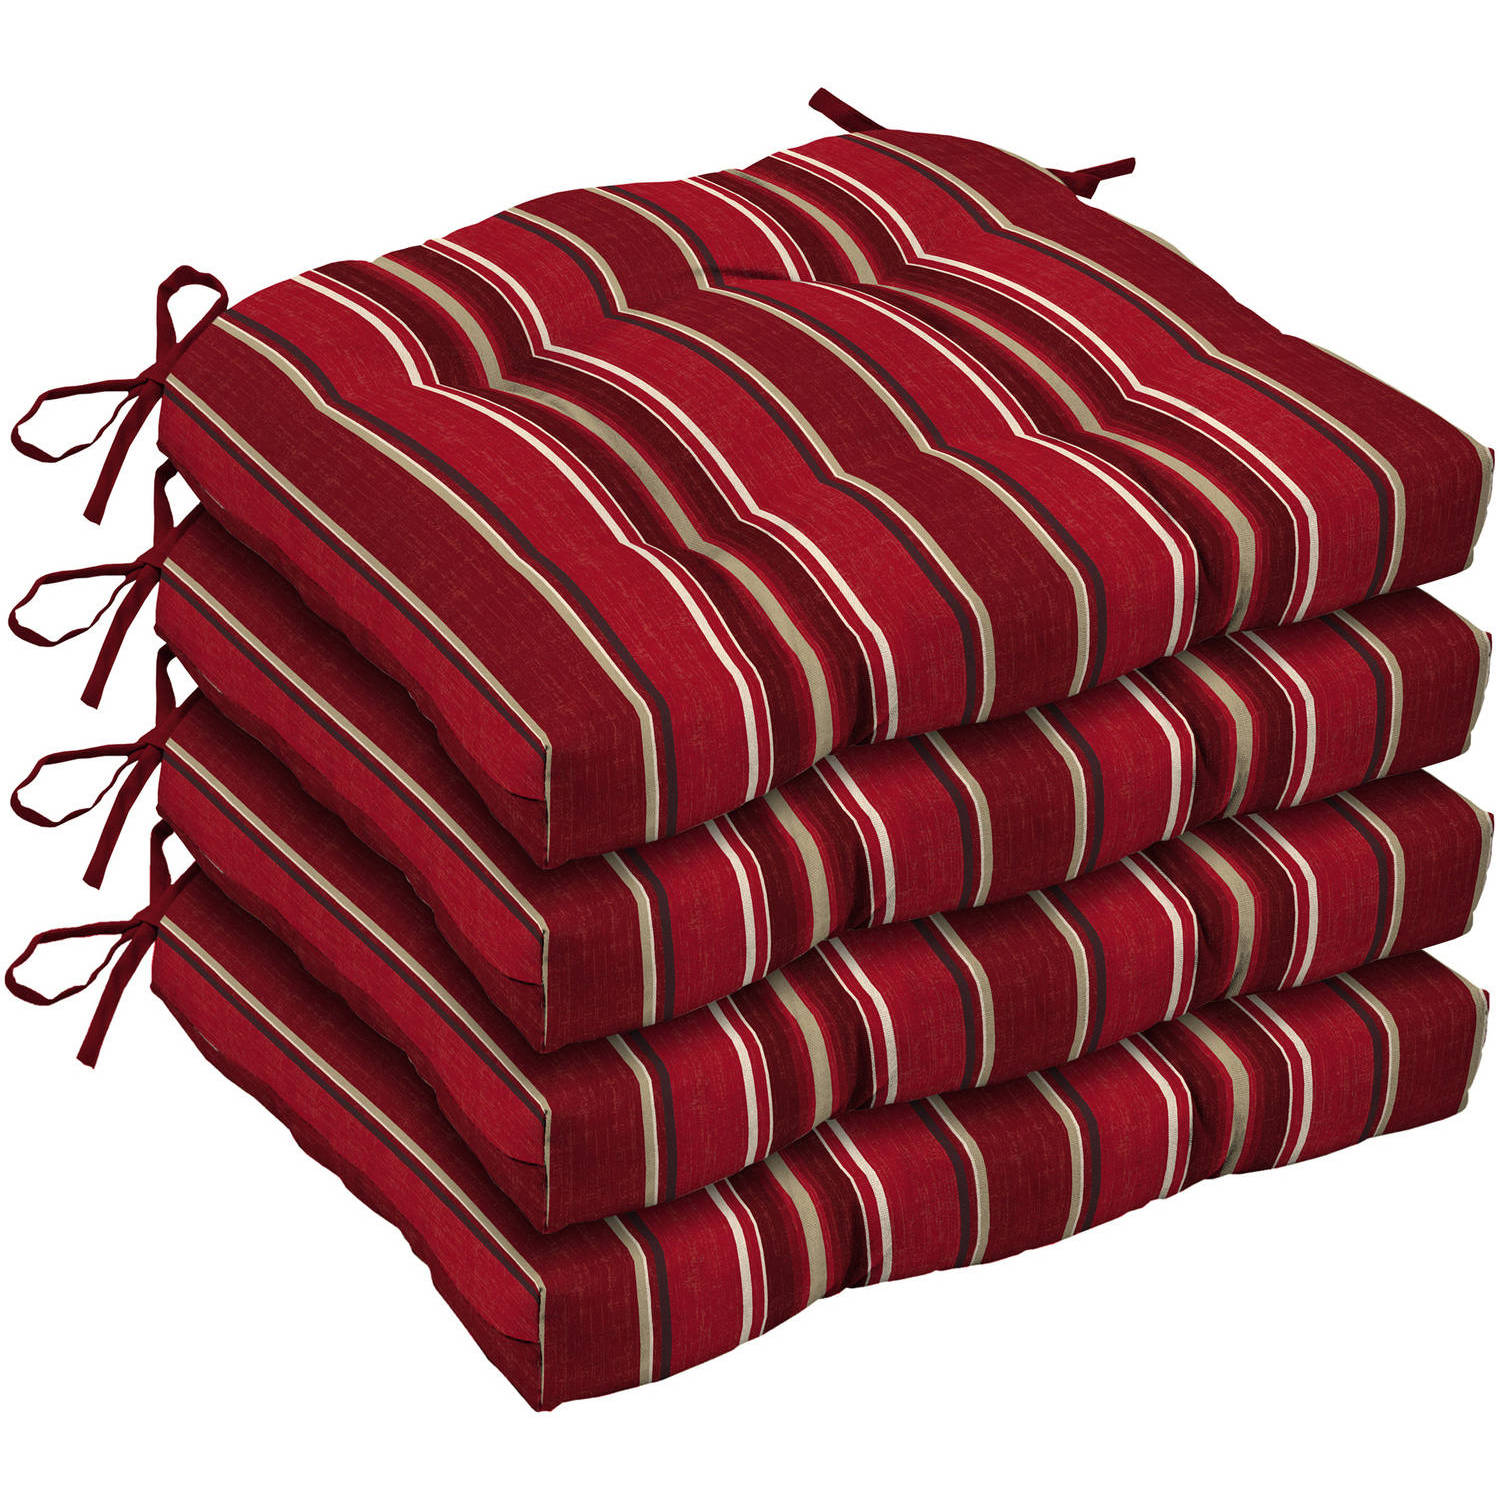 Better Homes and Gardens Outdoor Patio Wicker Seat Cushion, Set of 4